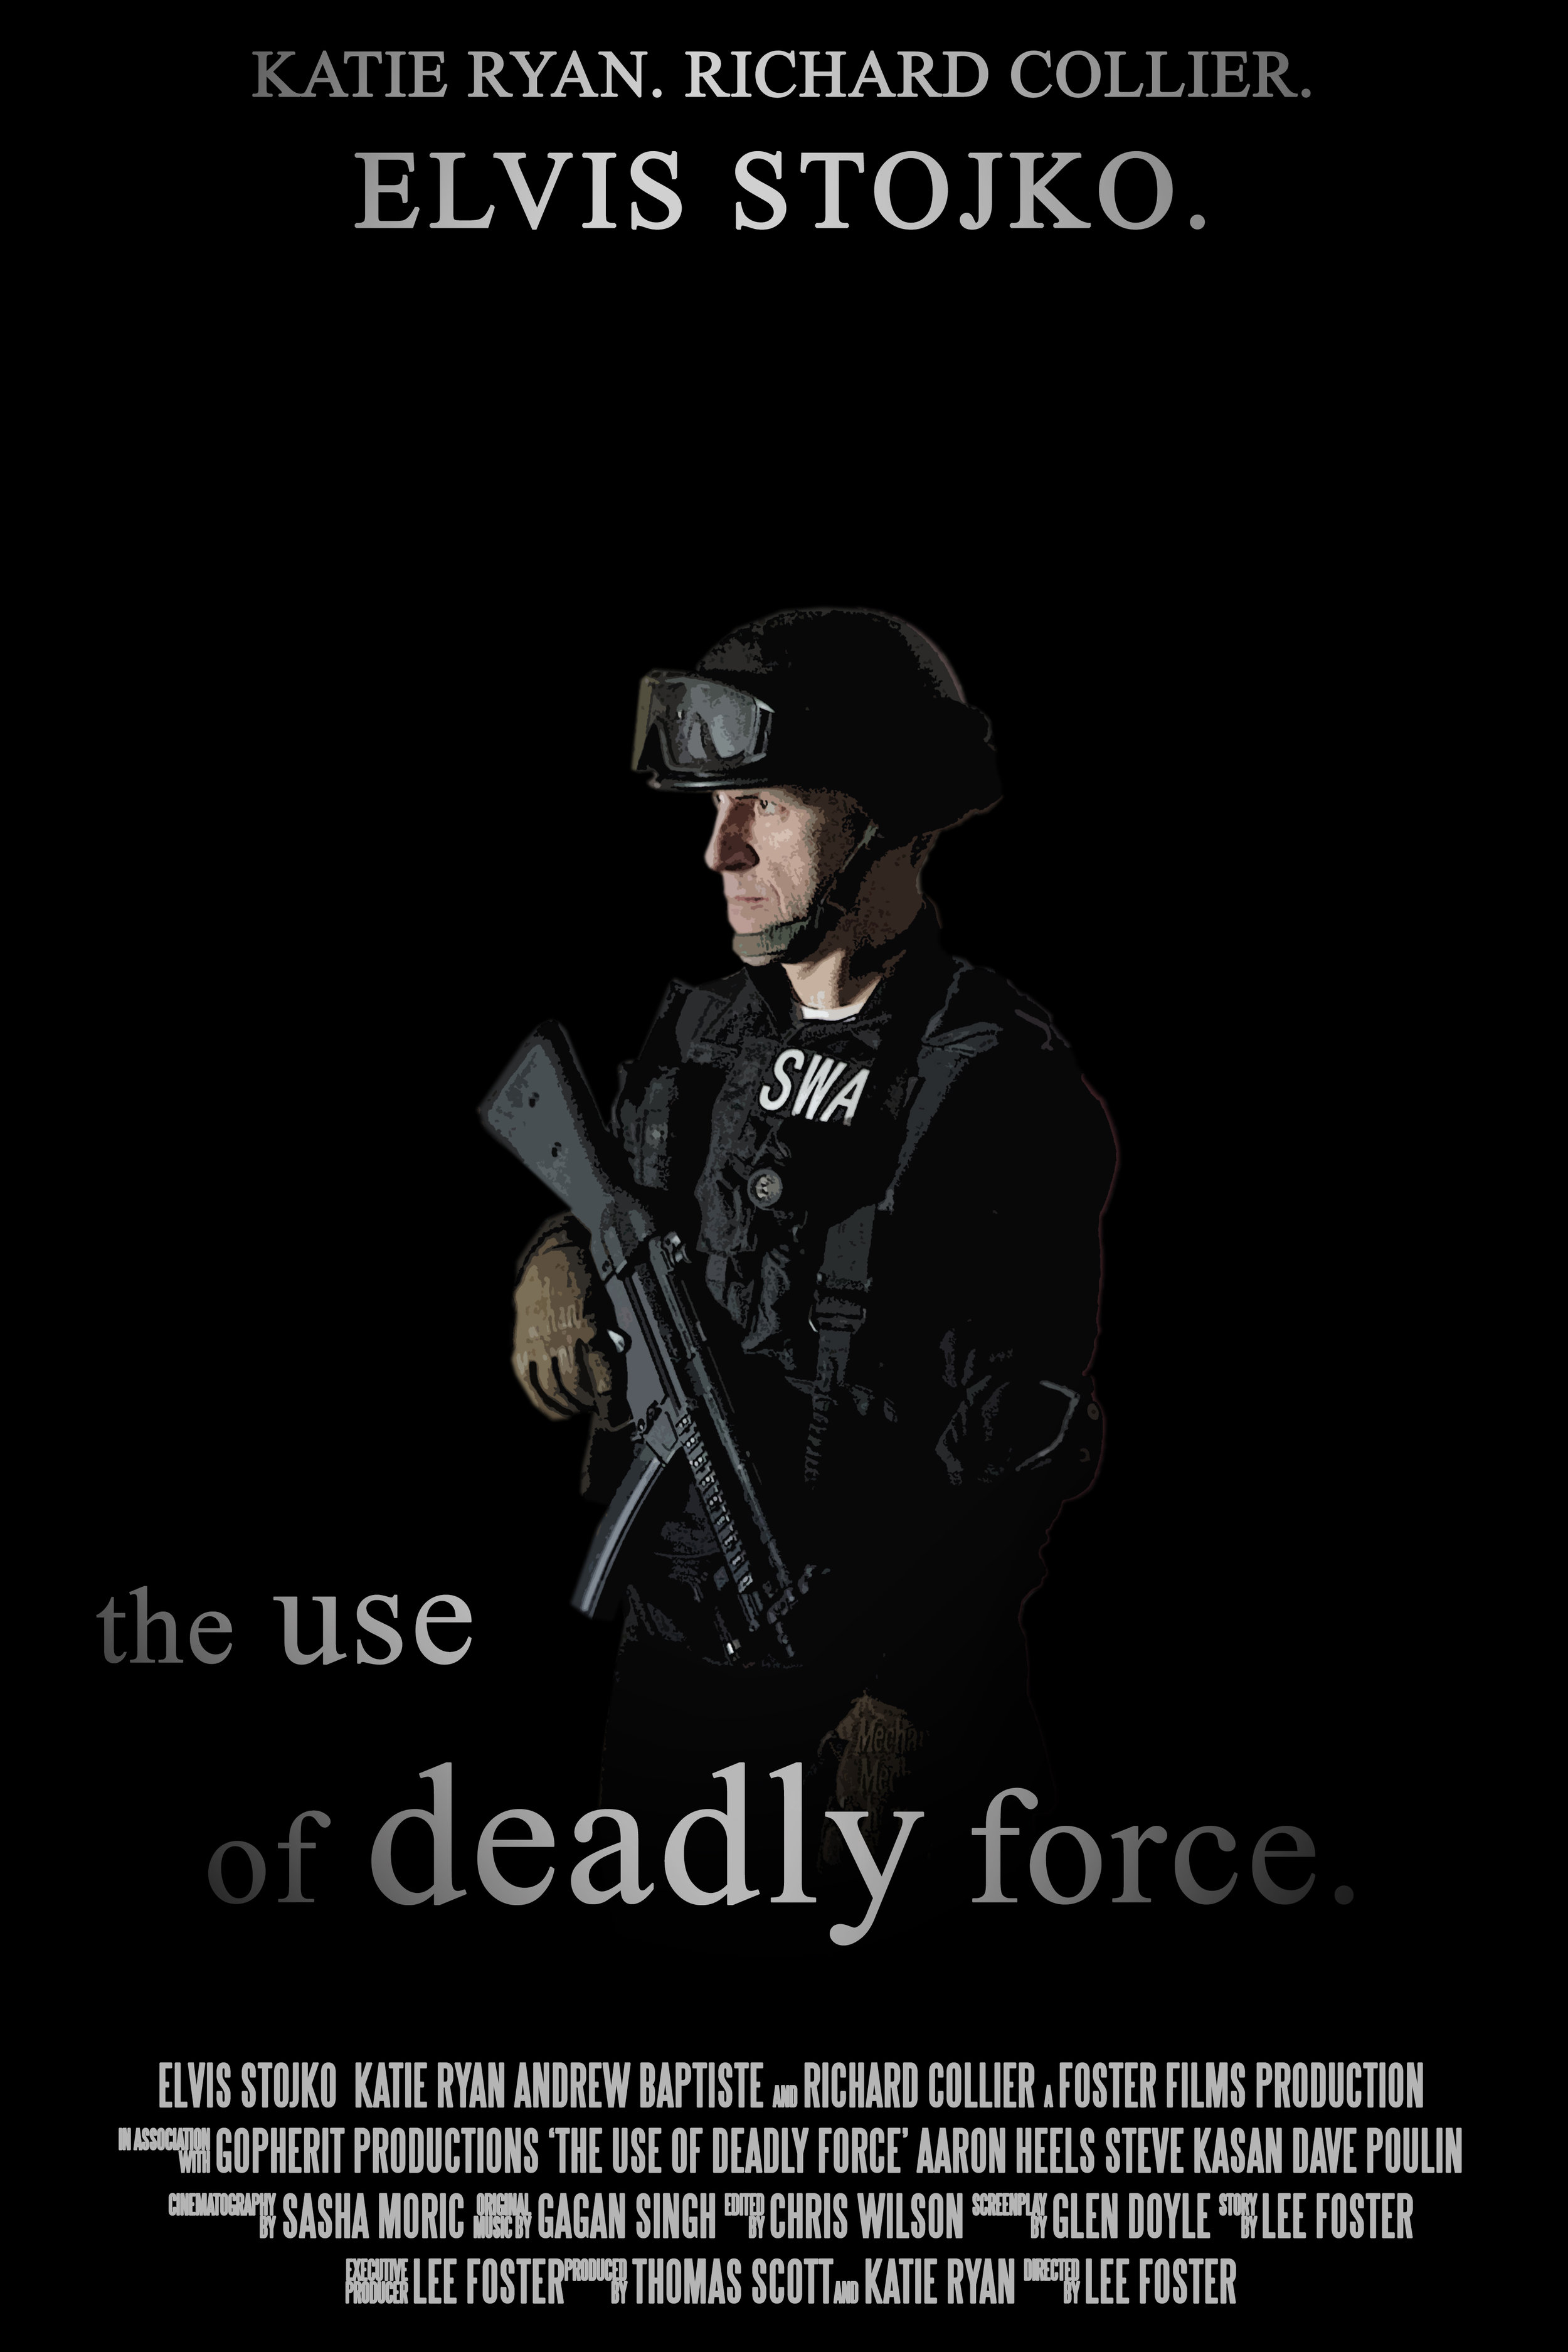 THE USE OF DEADLY FORCE  Starring Elvis Stojko - a short film following Captain Dagda as he navigates the complicated choices during a standoff with a gunman.... and the consequences of his decisions.